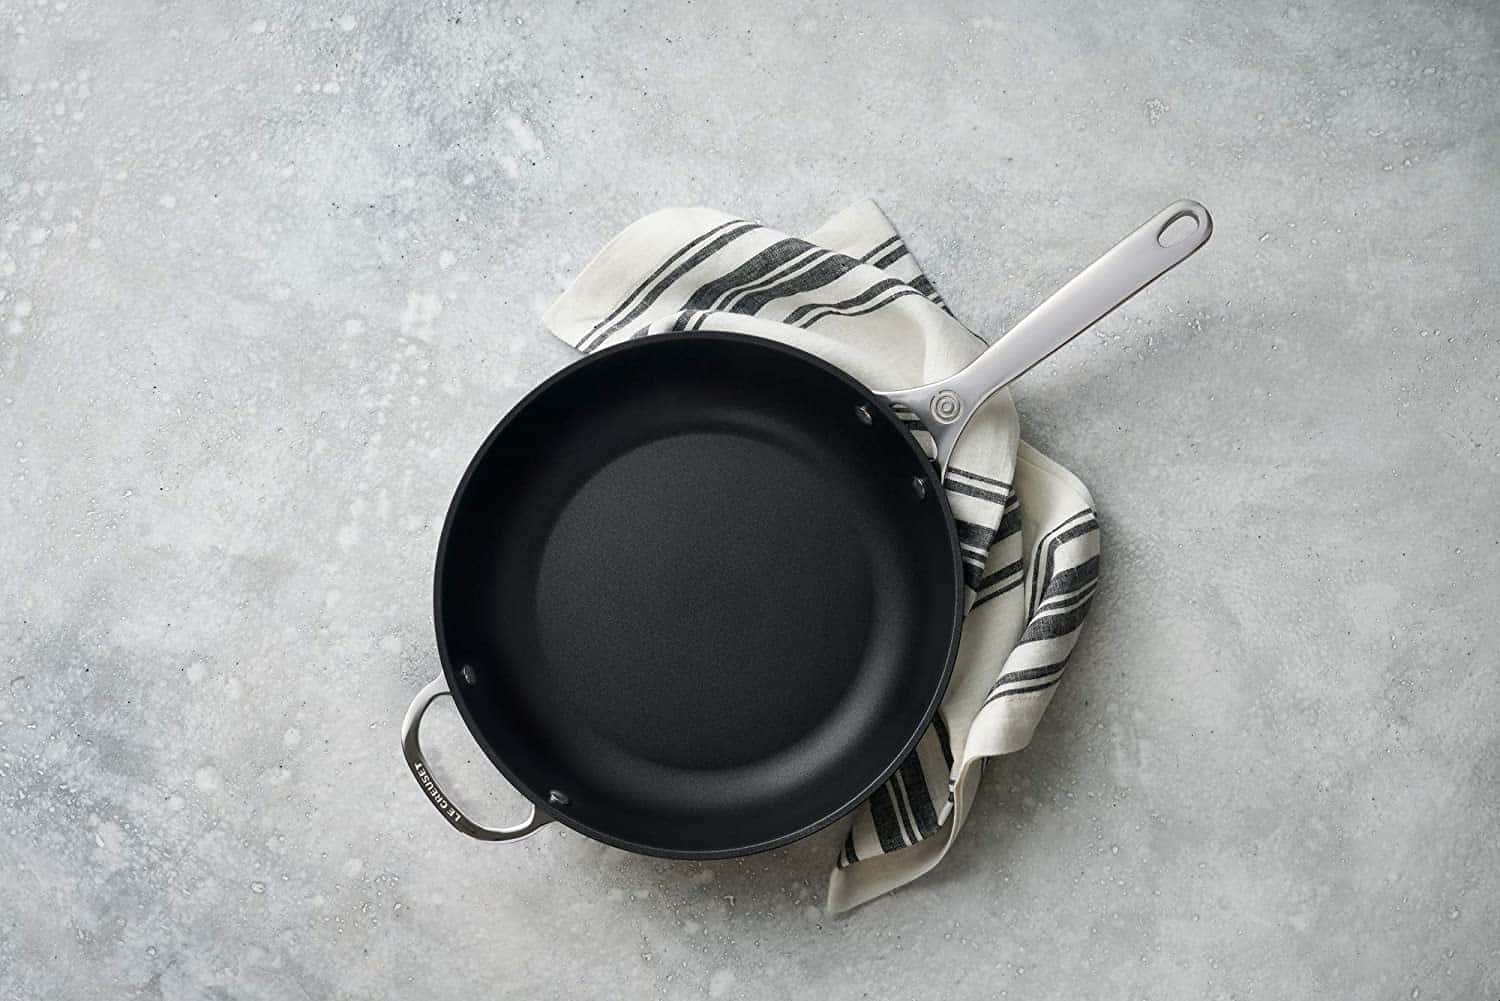 Best large skillet for induction: Le Creuset Les Forgées